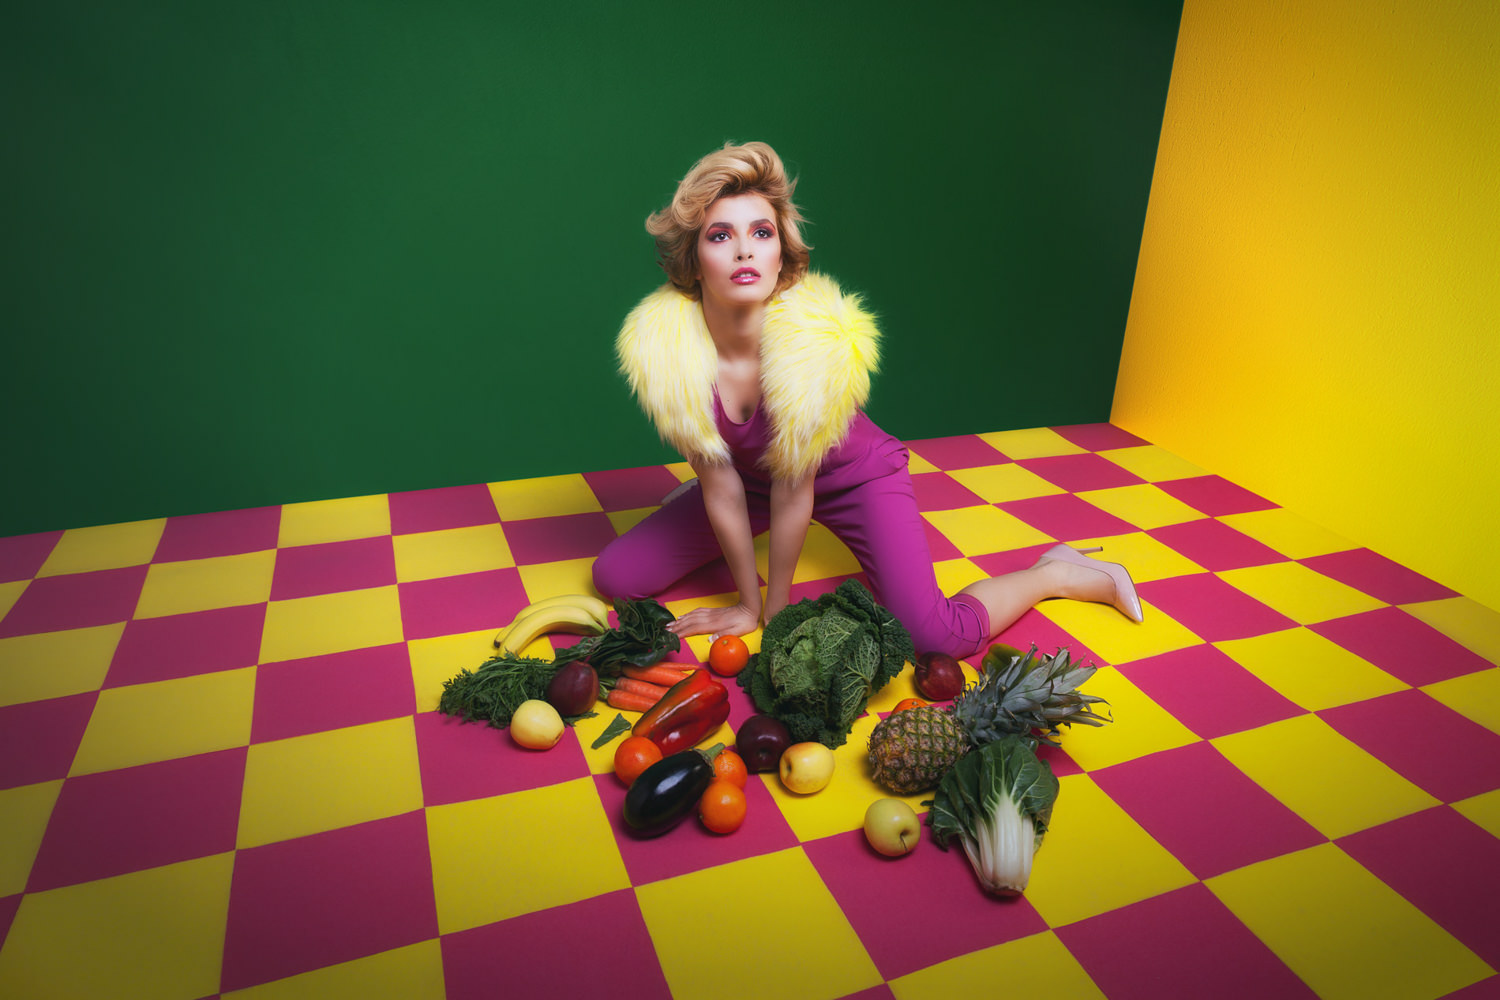 COVER_FRUIT_CHIC_NOTEXT.jpg